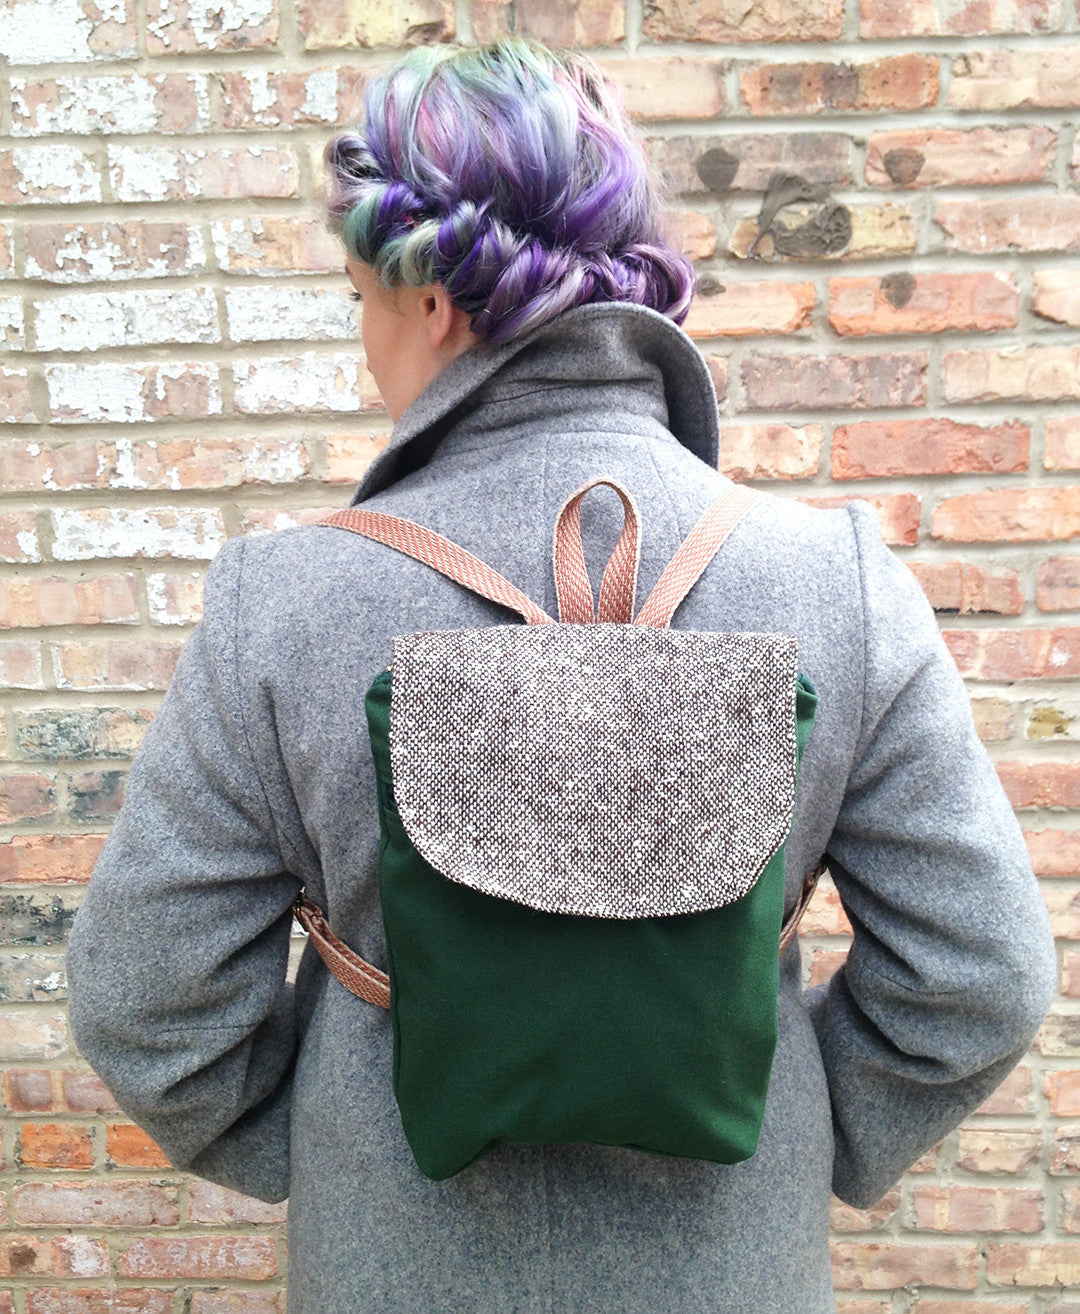 woman has her back towards camera, with rainbow hair tied up wears a grey wool coat. She wears a green small backpack with tweed flap and pink tweed straps